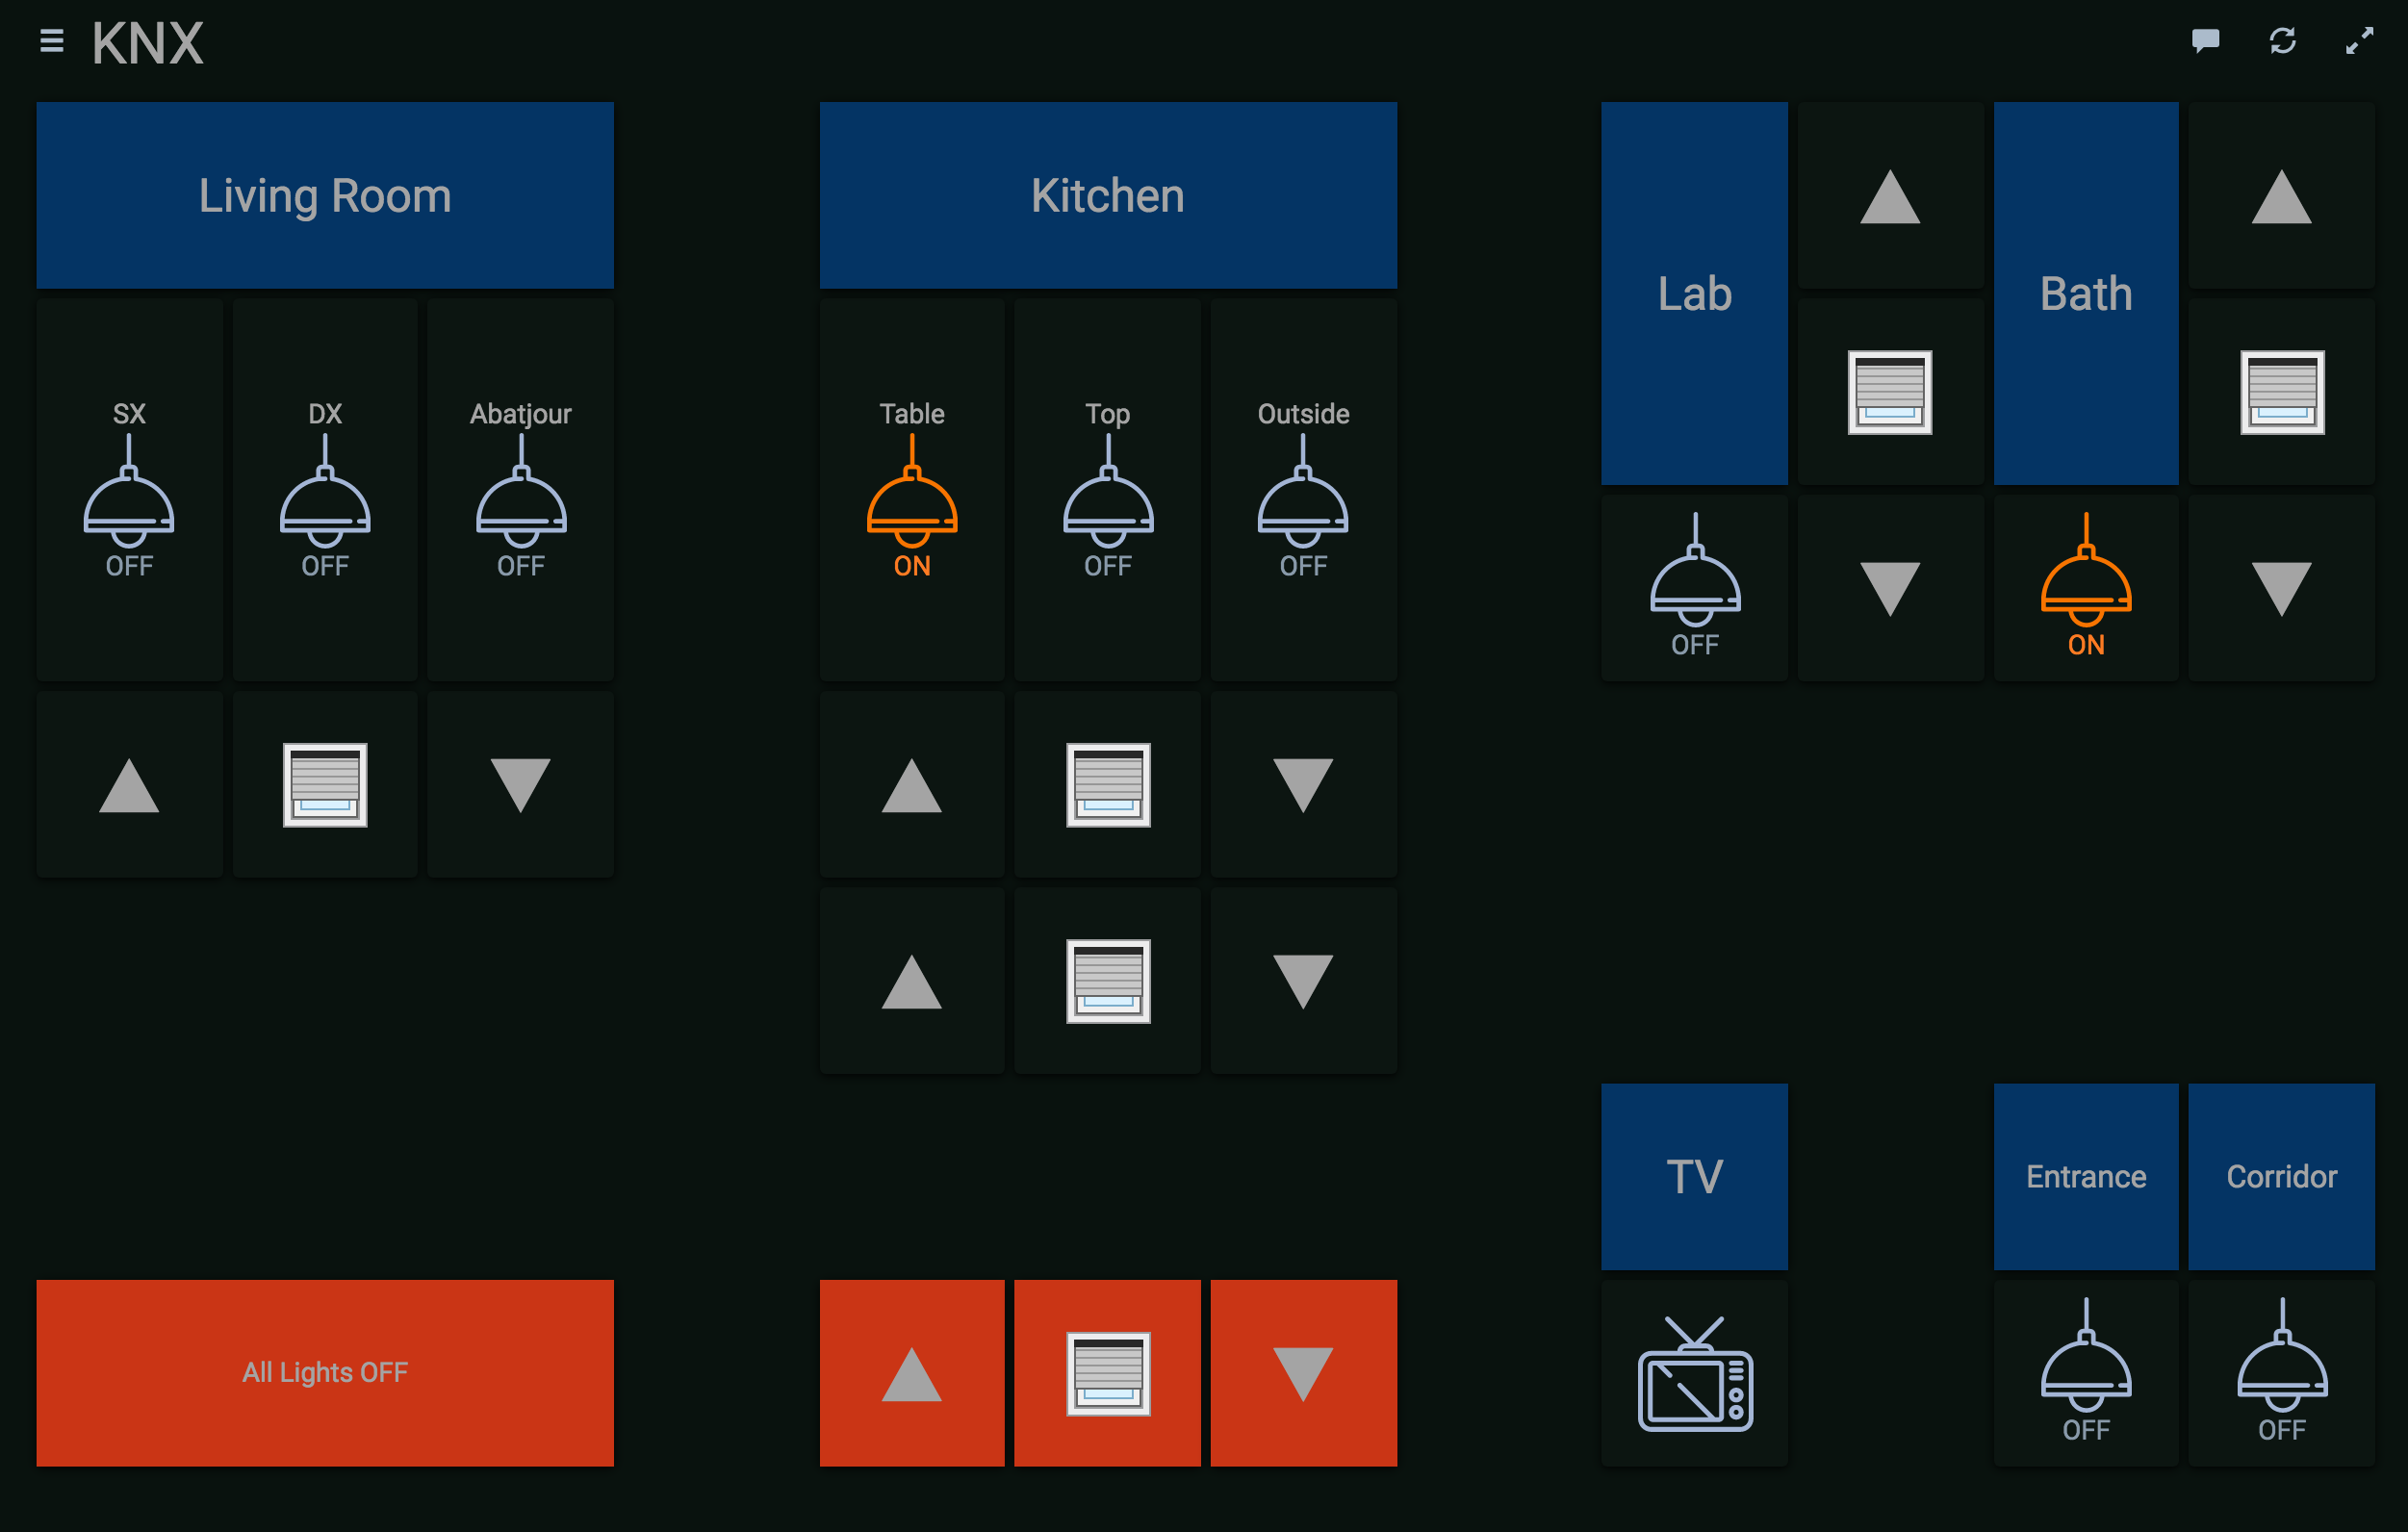 Cm3 Home Openhab Knx Guiott Hardware Design Vimar 4 Way Switch Editing The Items Knxitems File Its Possible To Assign Relation Between Name Displayed And Address Of Your Devices